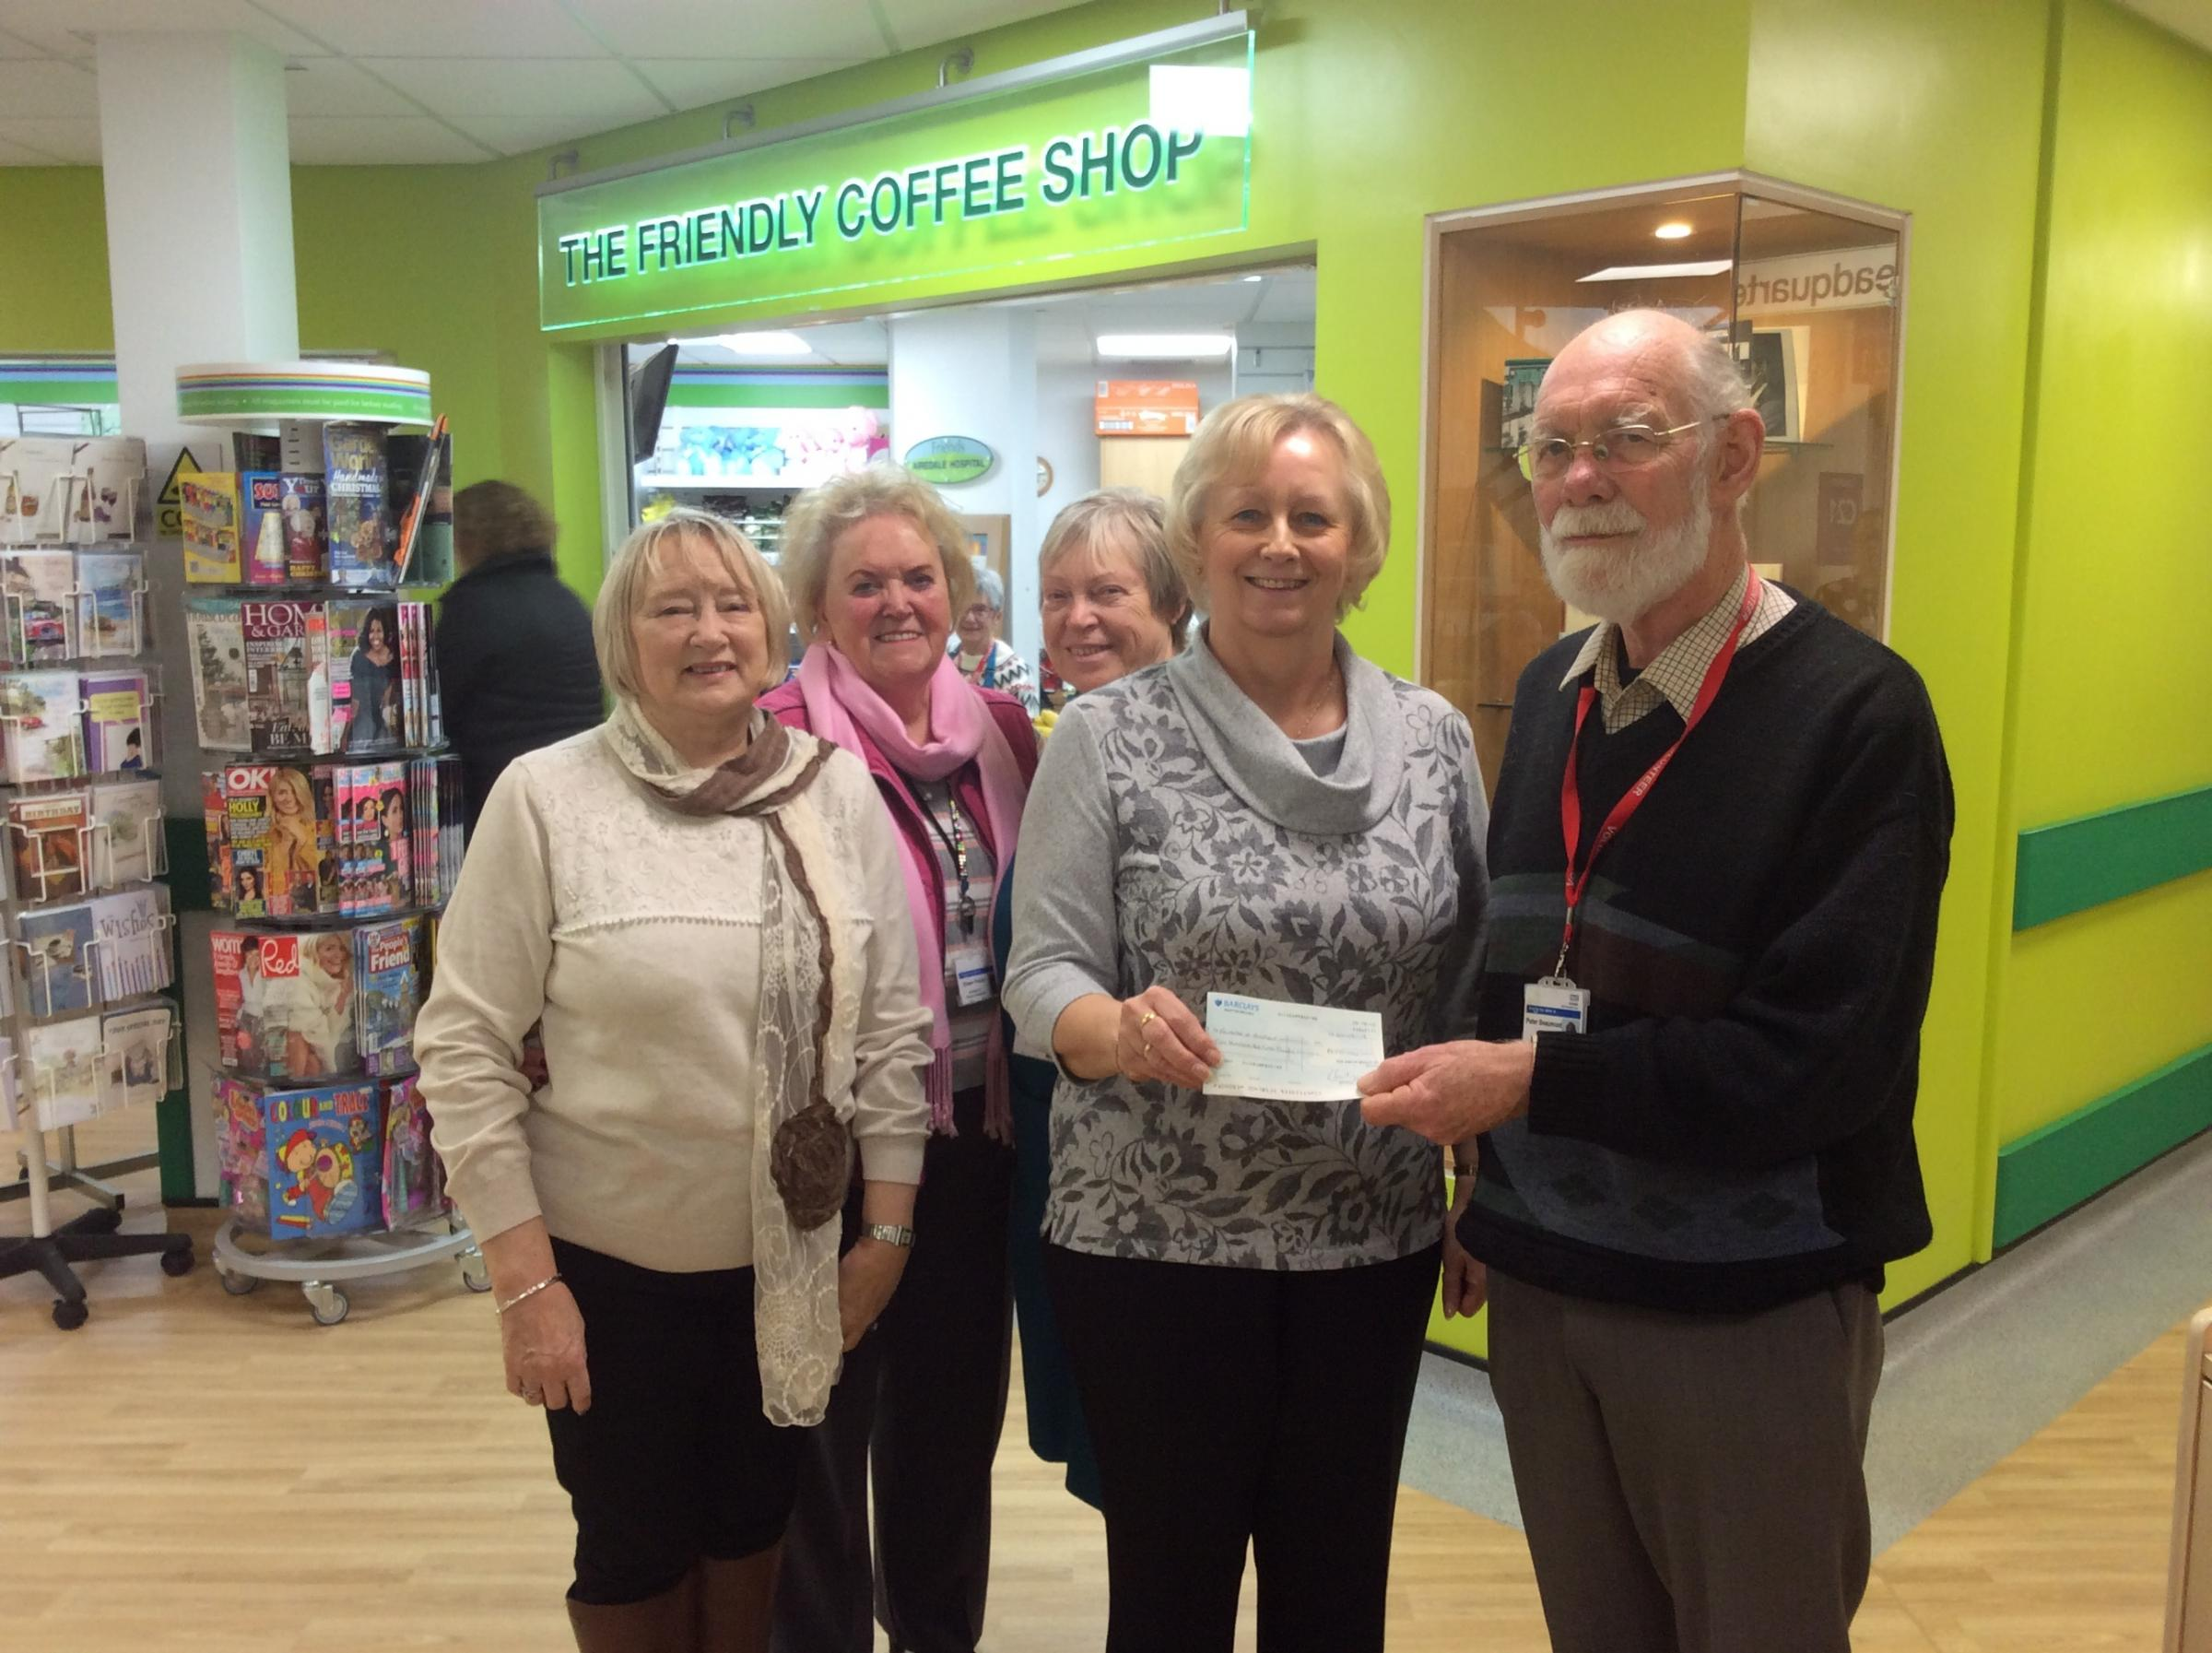 Andrea Moore and Thalia Burton from New2You present a cheque to Friends of Airedale president Eileen Proud and volunteers Peter Beaumont and Brenda Ferridge